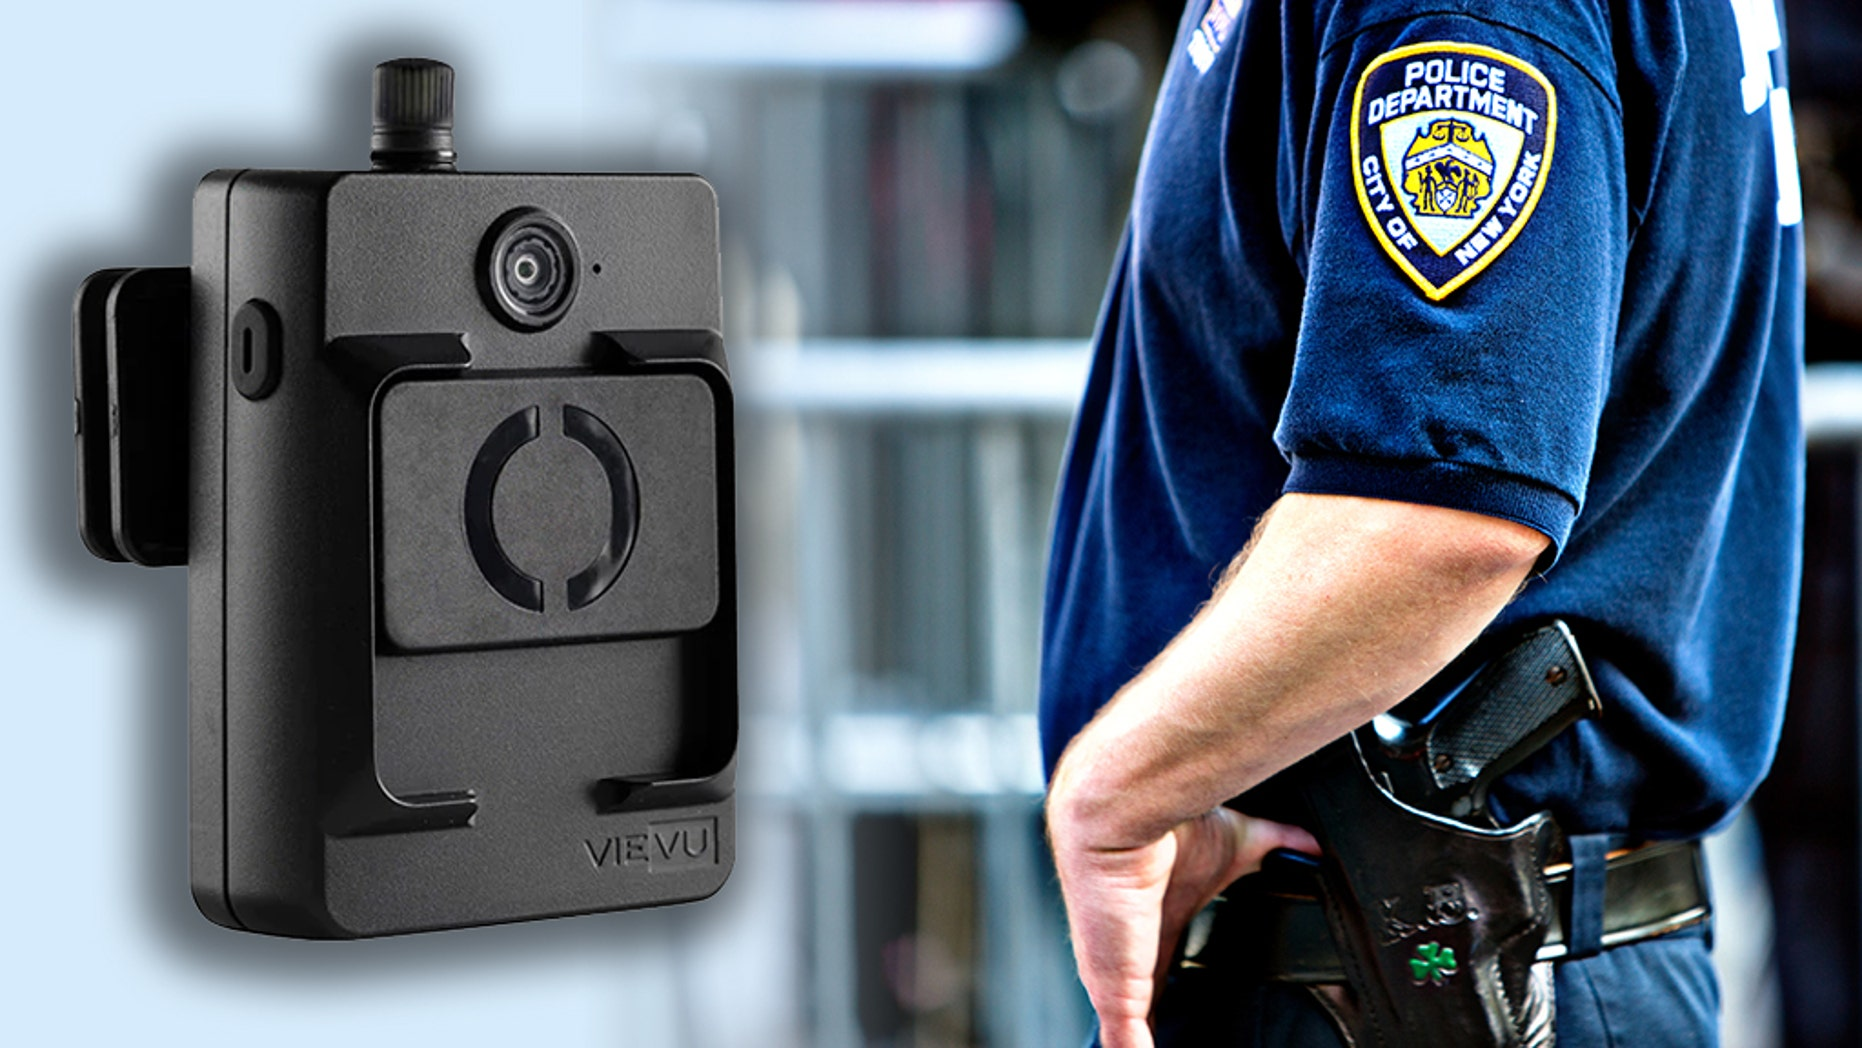 The NYPD pulled nearly 3,000 body cameras after one exploded, police said.